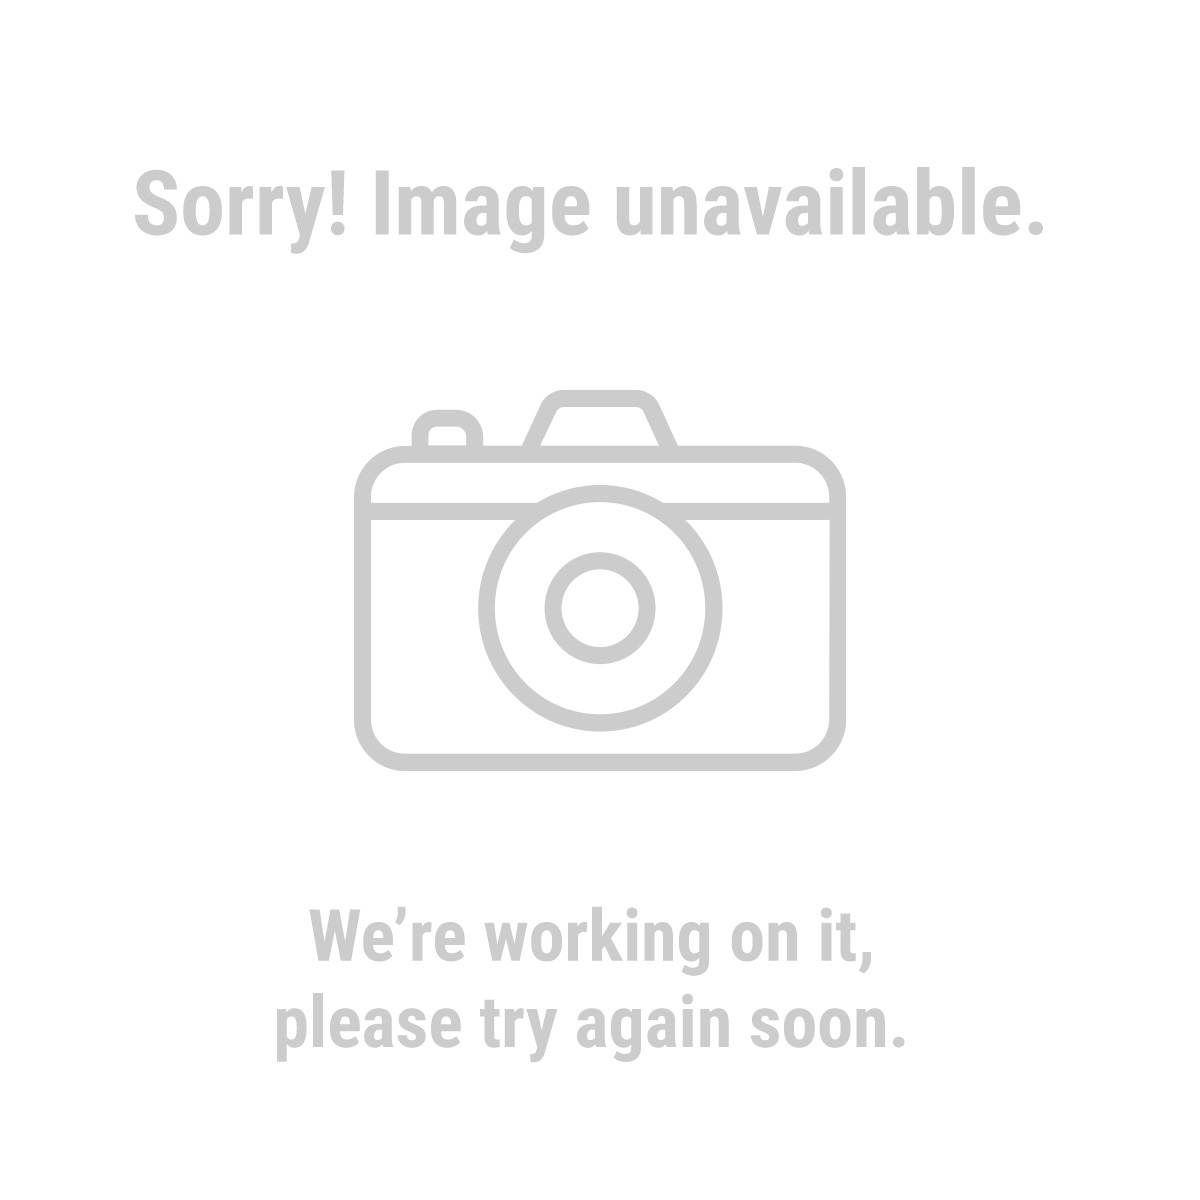 45661 3 Piece Heavy Duty Wire Brushes